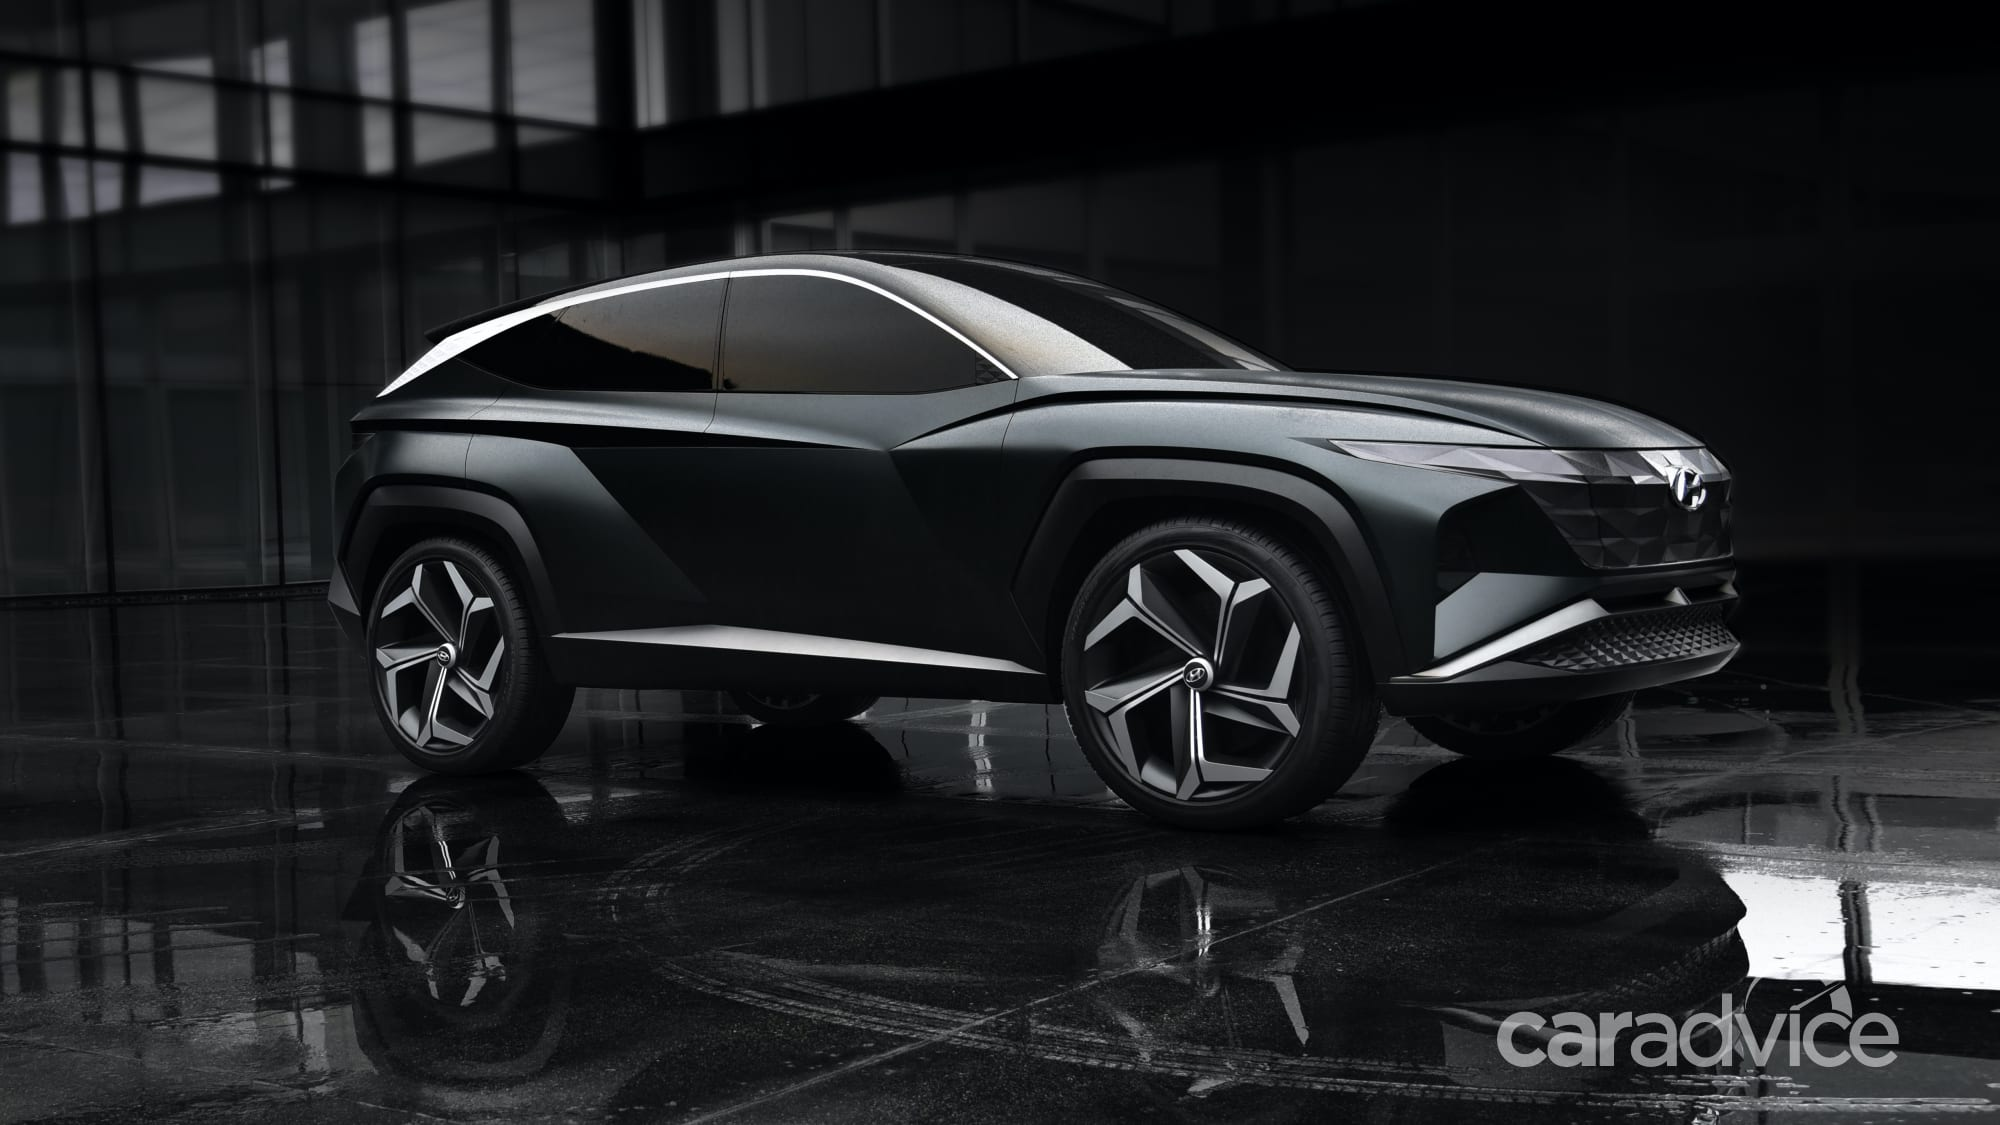 2021 hyundai tucson previewedvision t concept  update